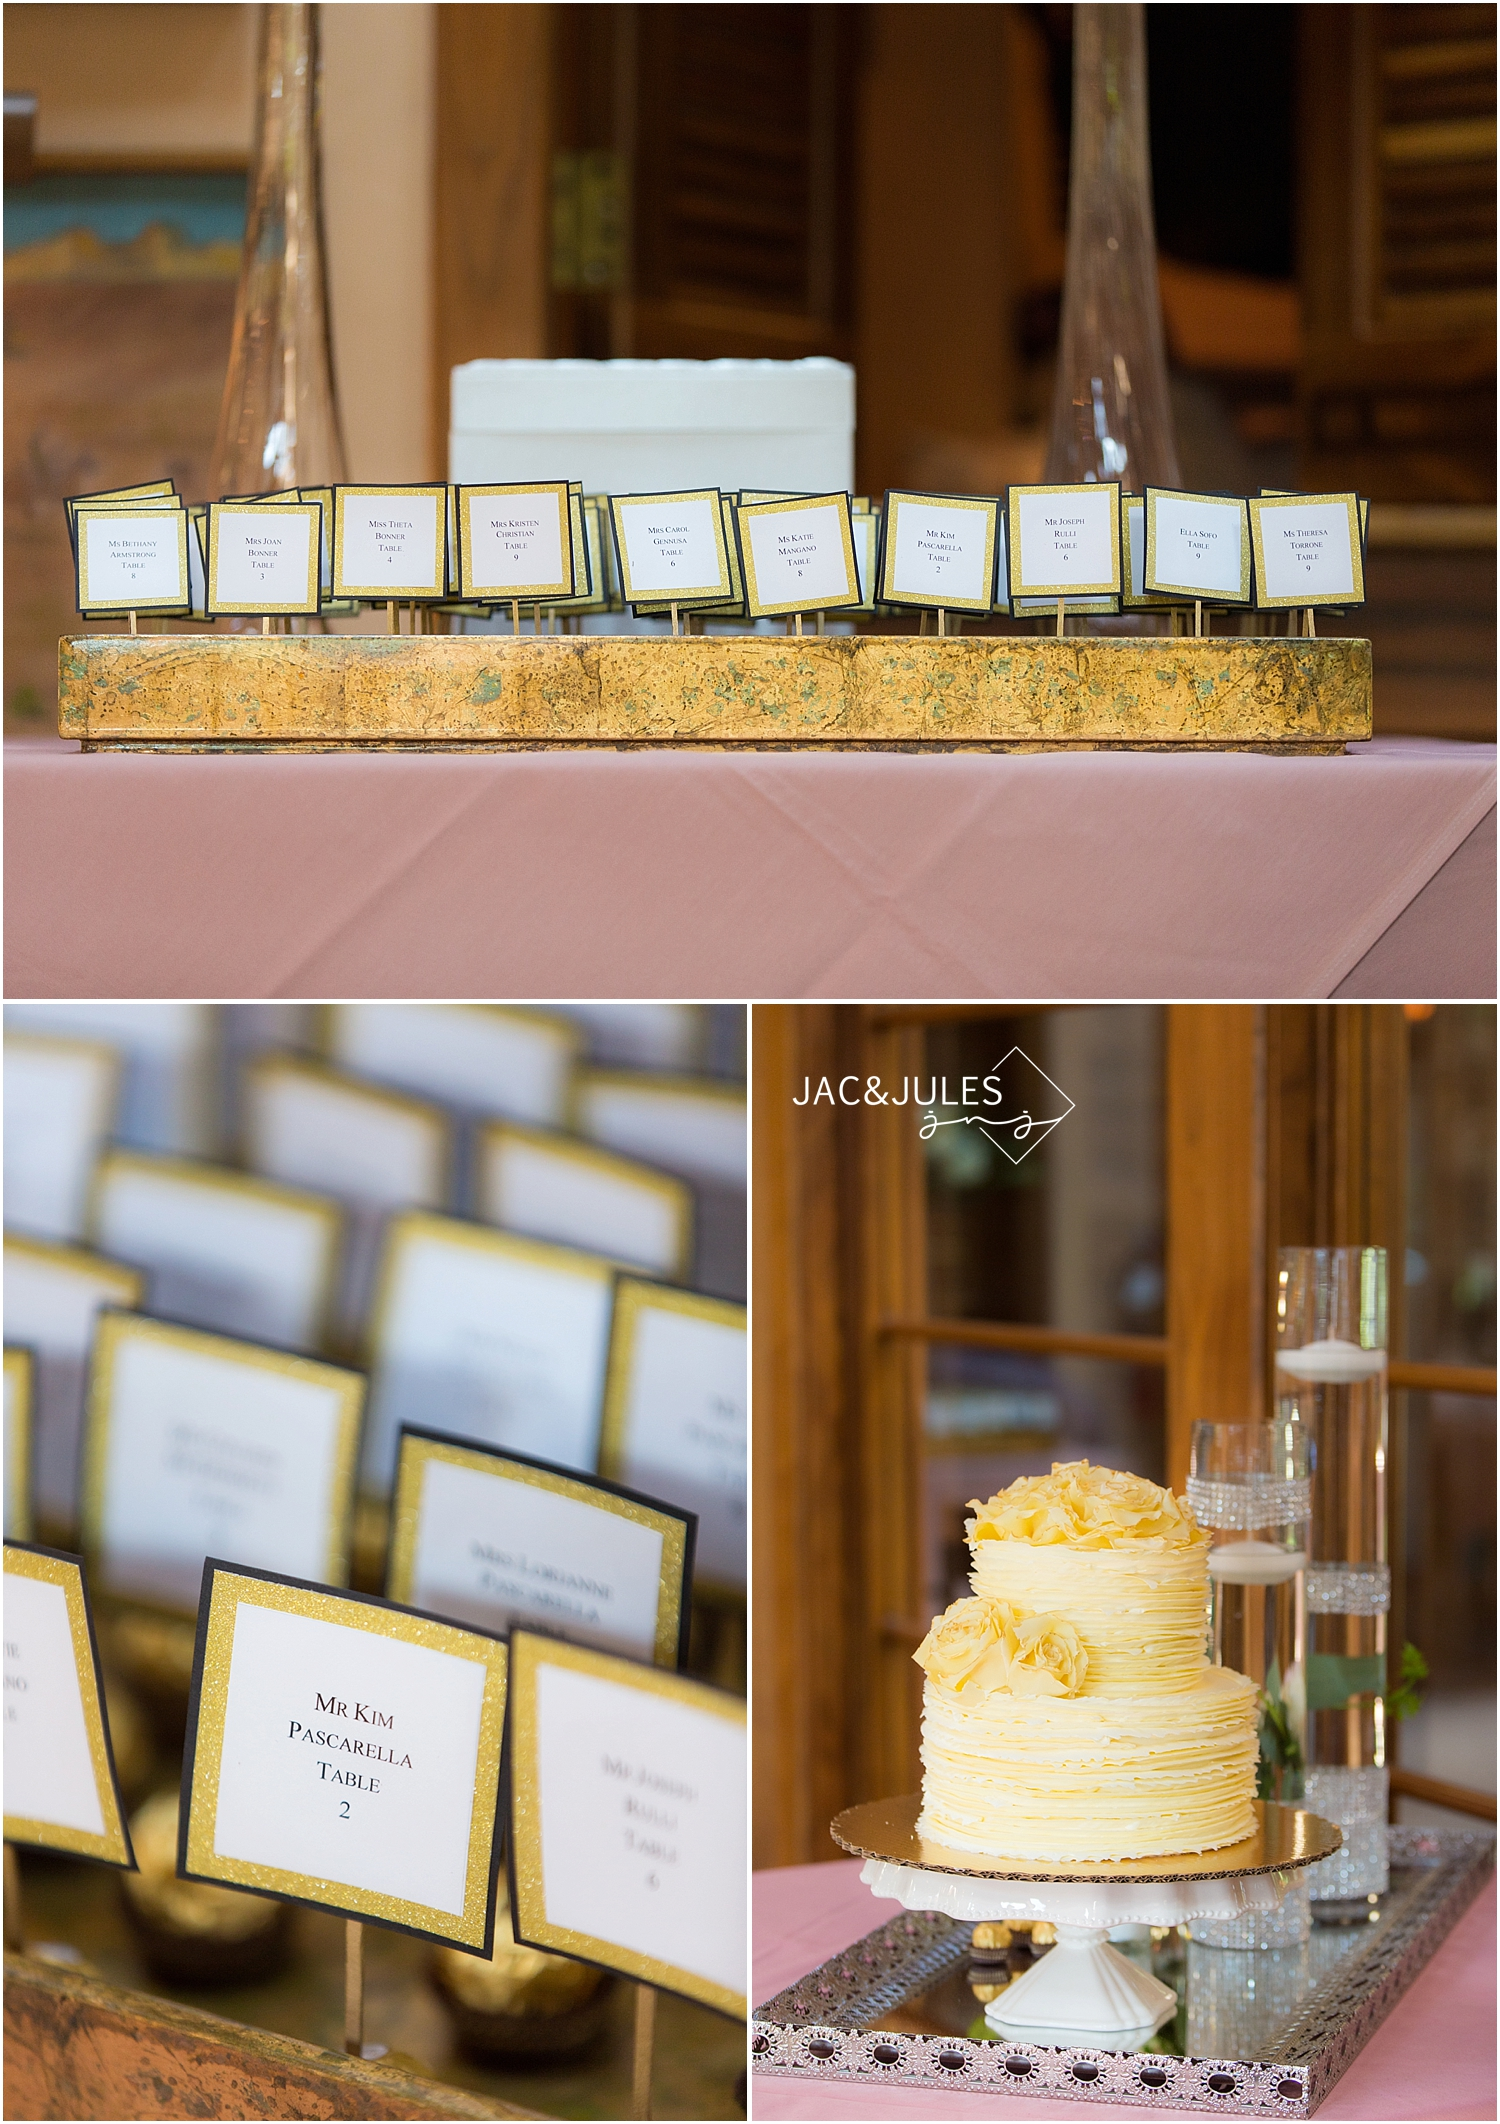 jacnjules photograph a wedding at nauvoo grill in fair haven nj